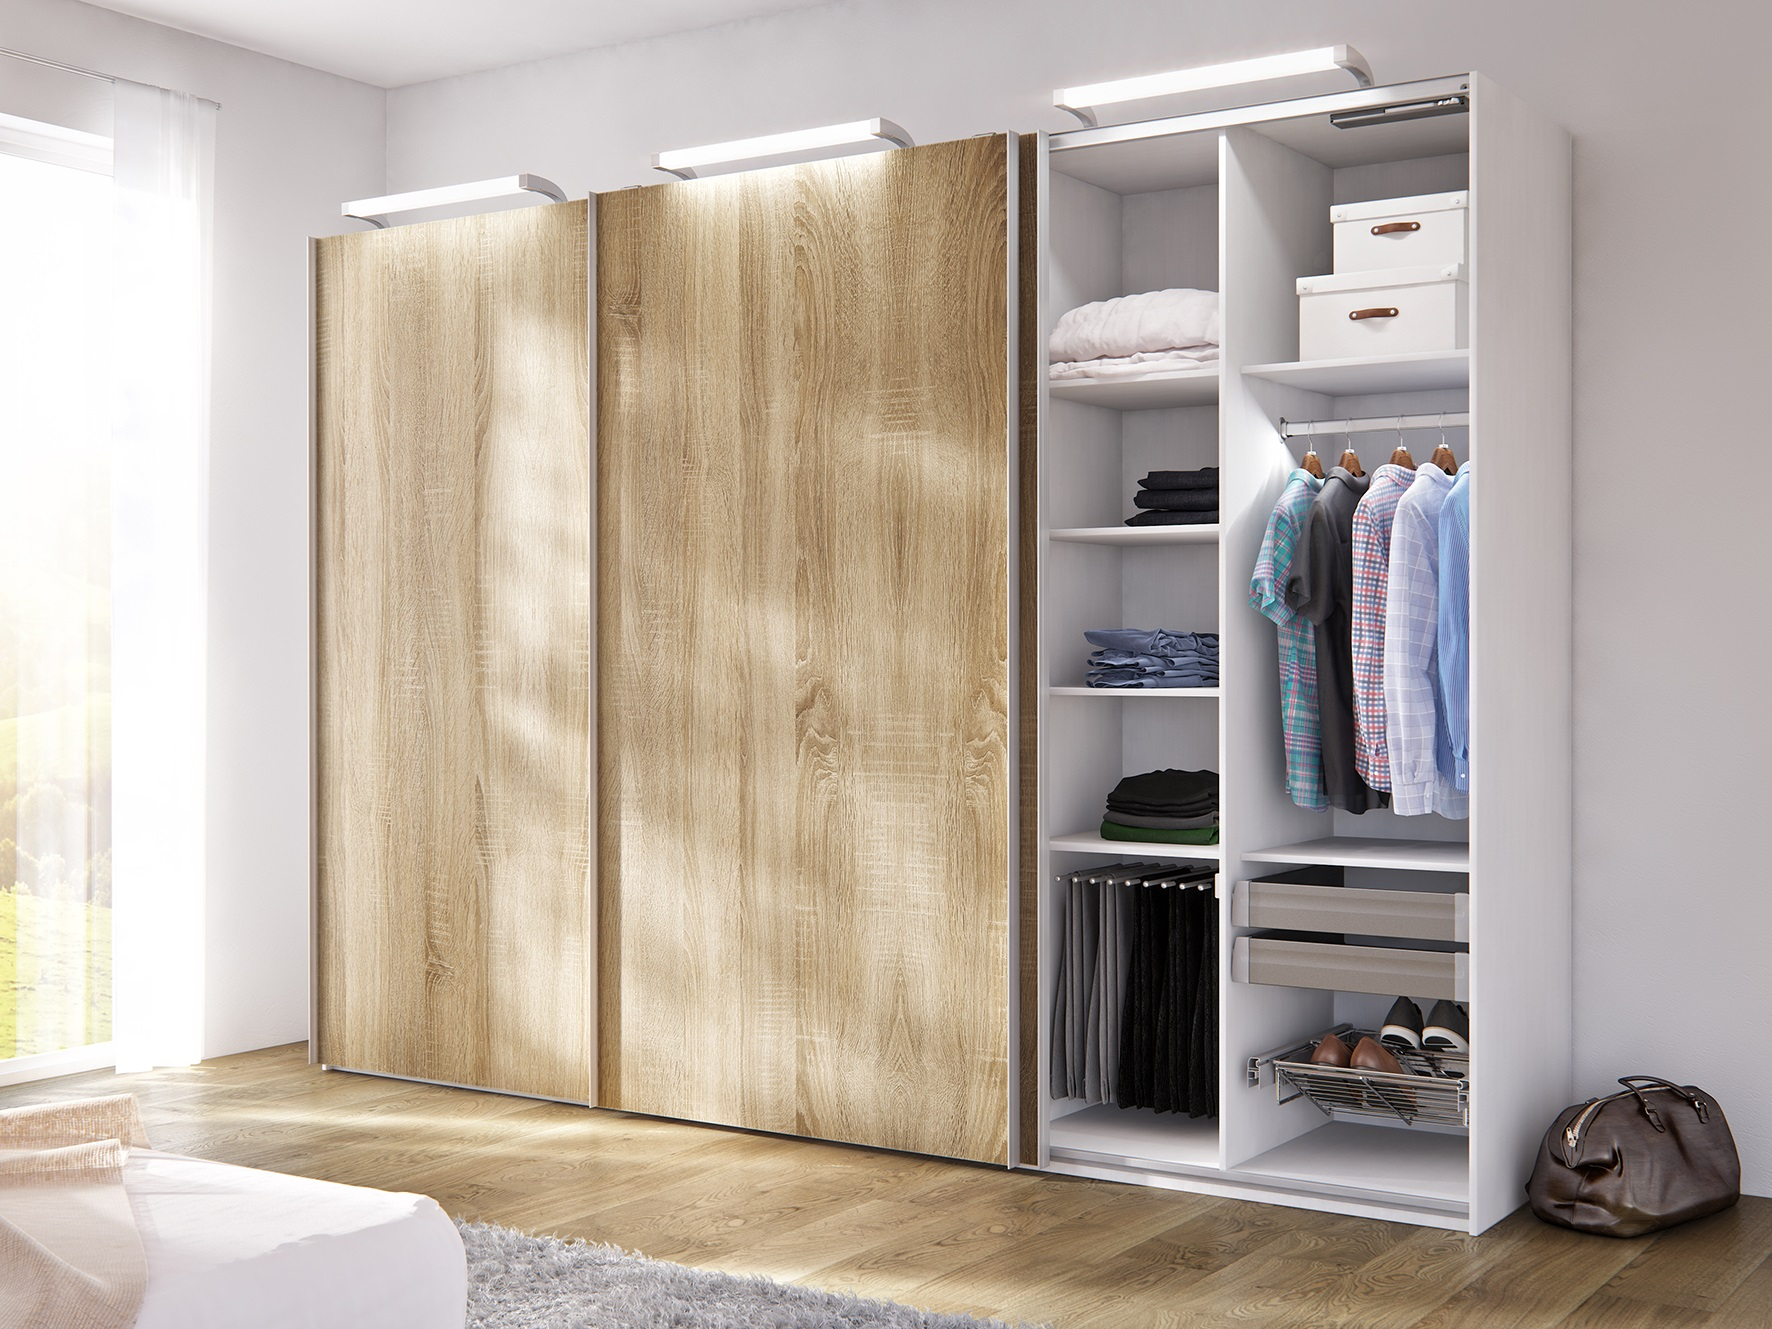 New From Hfele Slido Classic Sliding Door Systems Now Available